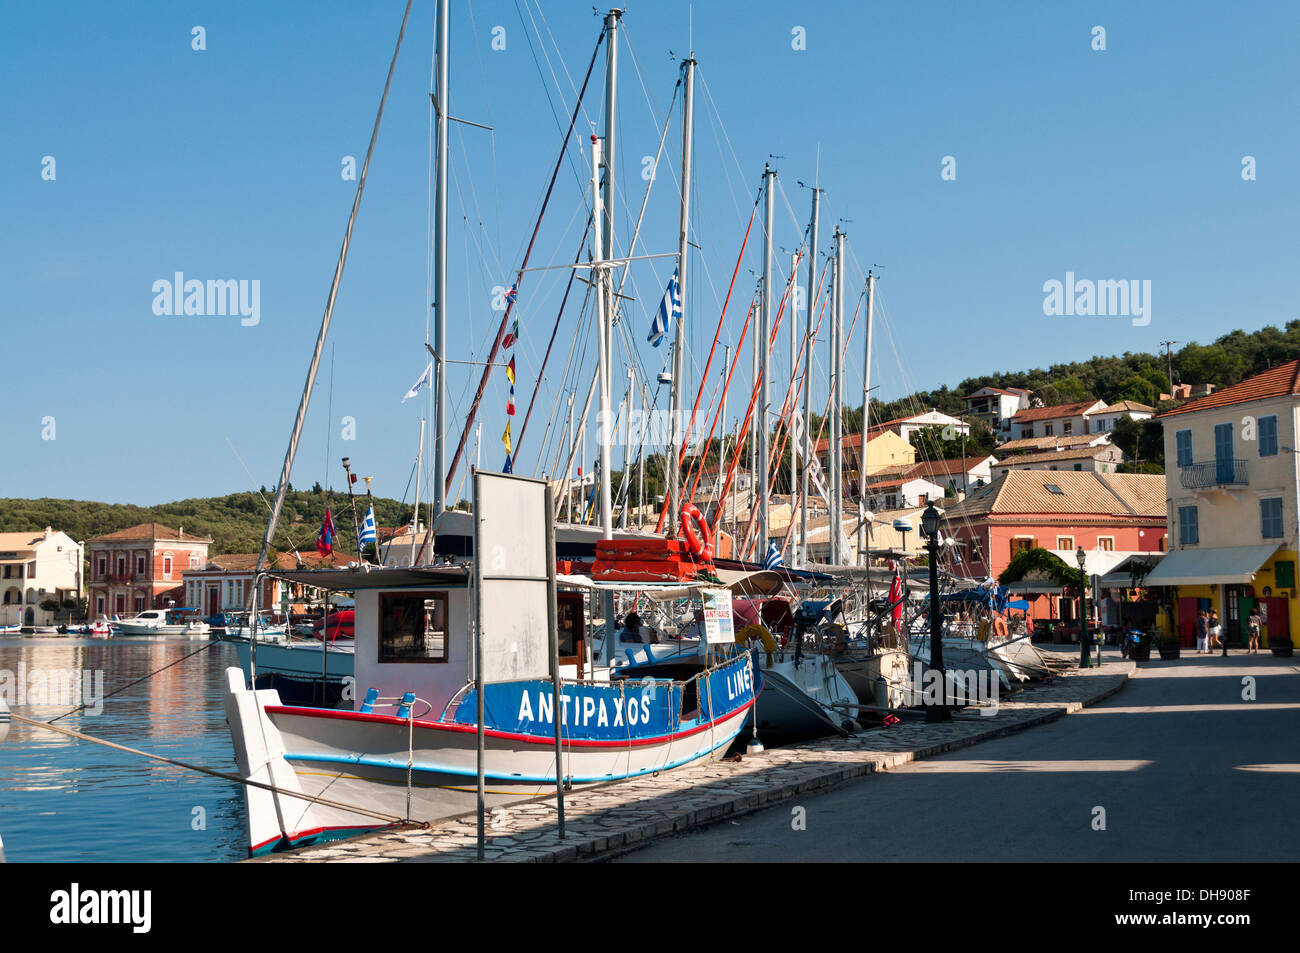 The greek fishing village of Gaios on the island of Paxi - Stock Image